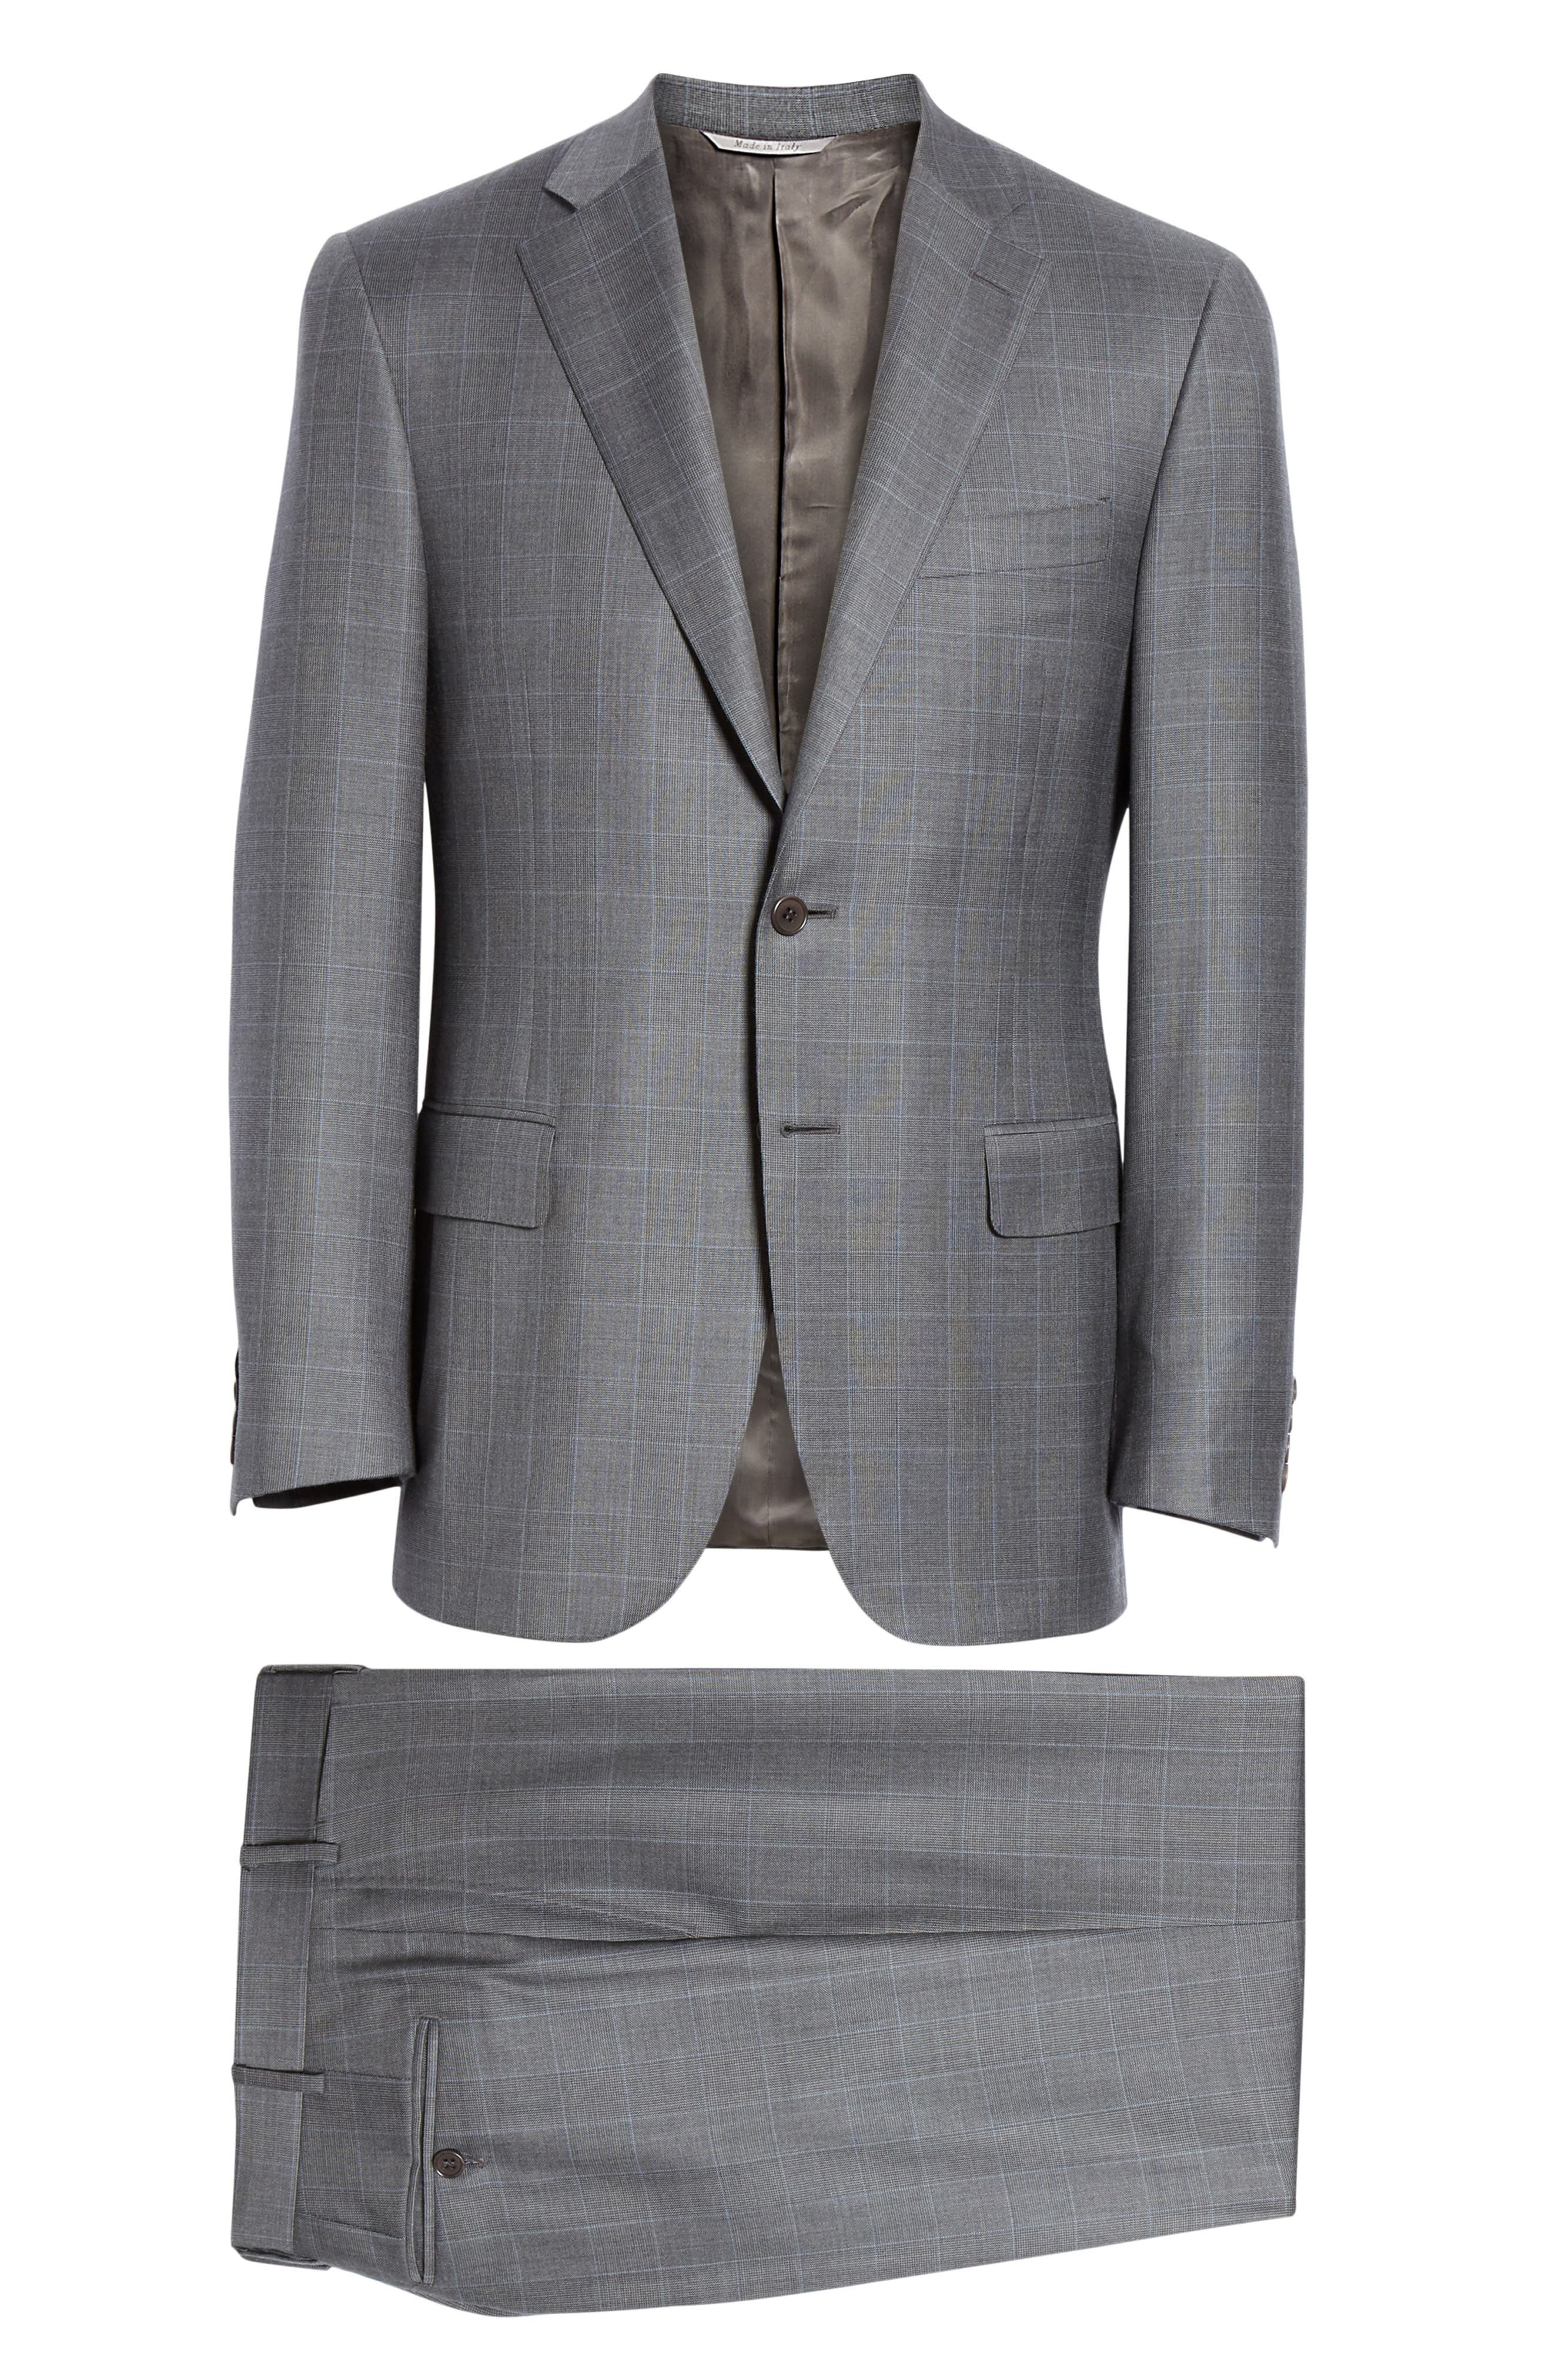 CANALI, Sienna Classic Fit Plaid Wool Suit, Alternate thumbnail 8, color, GREY